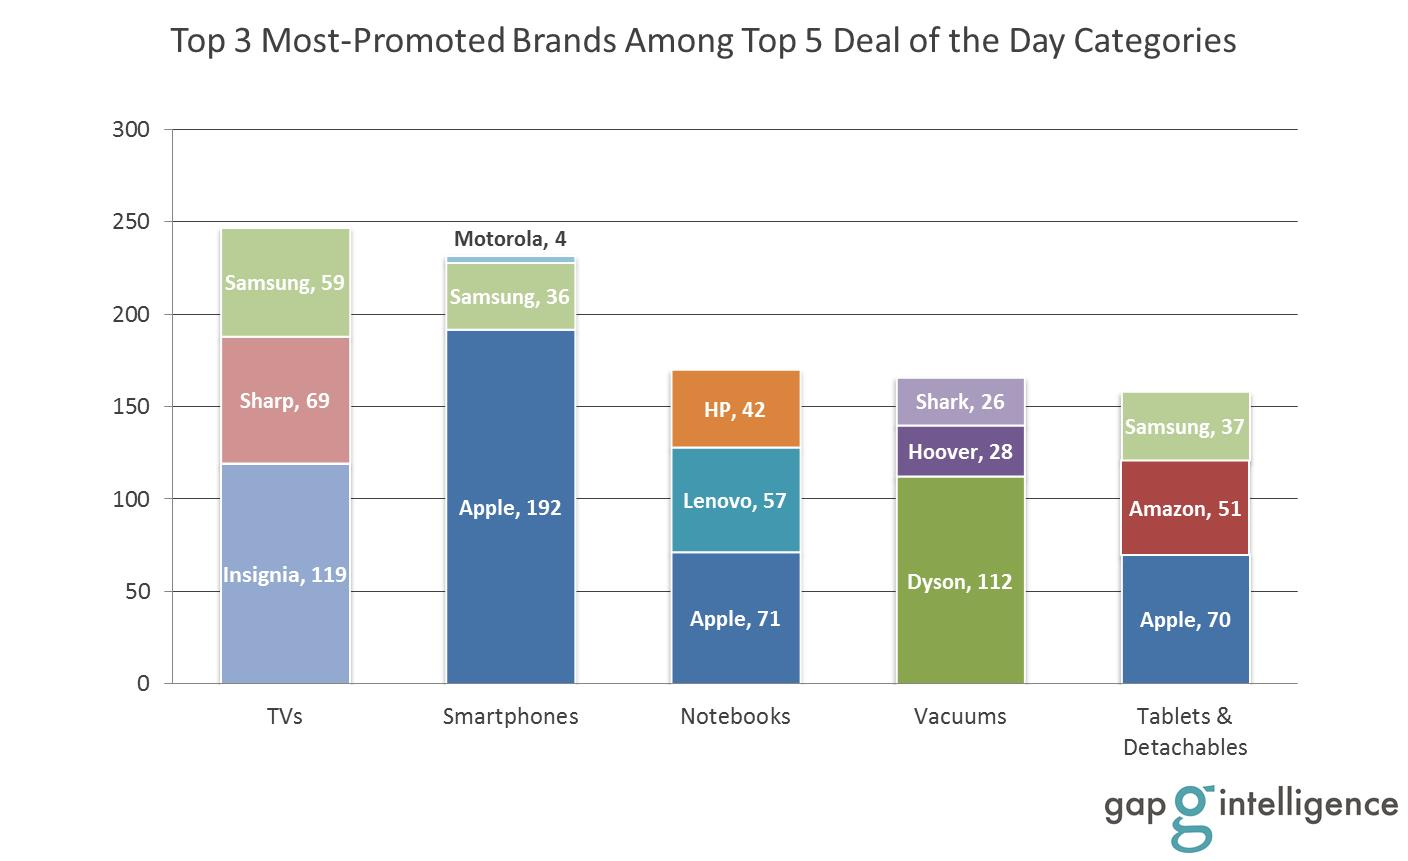 Most-Promoted Brands Among Top Categories